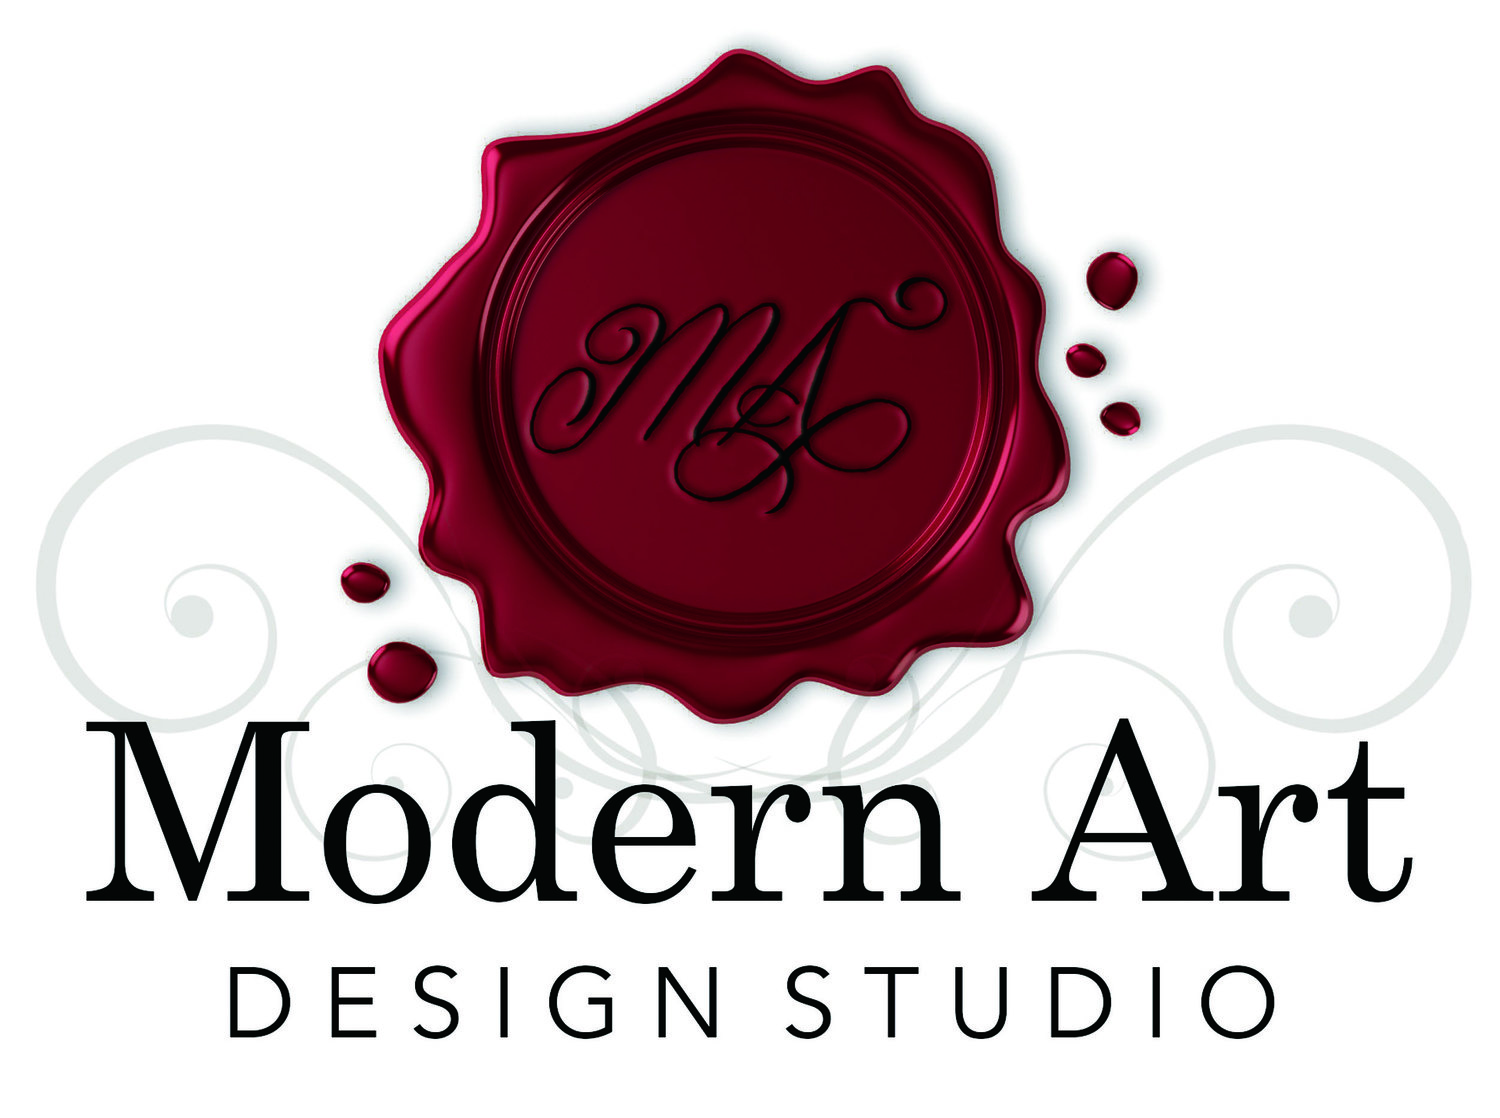 Modern Art Design Studio